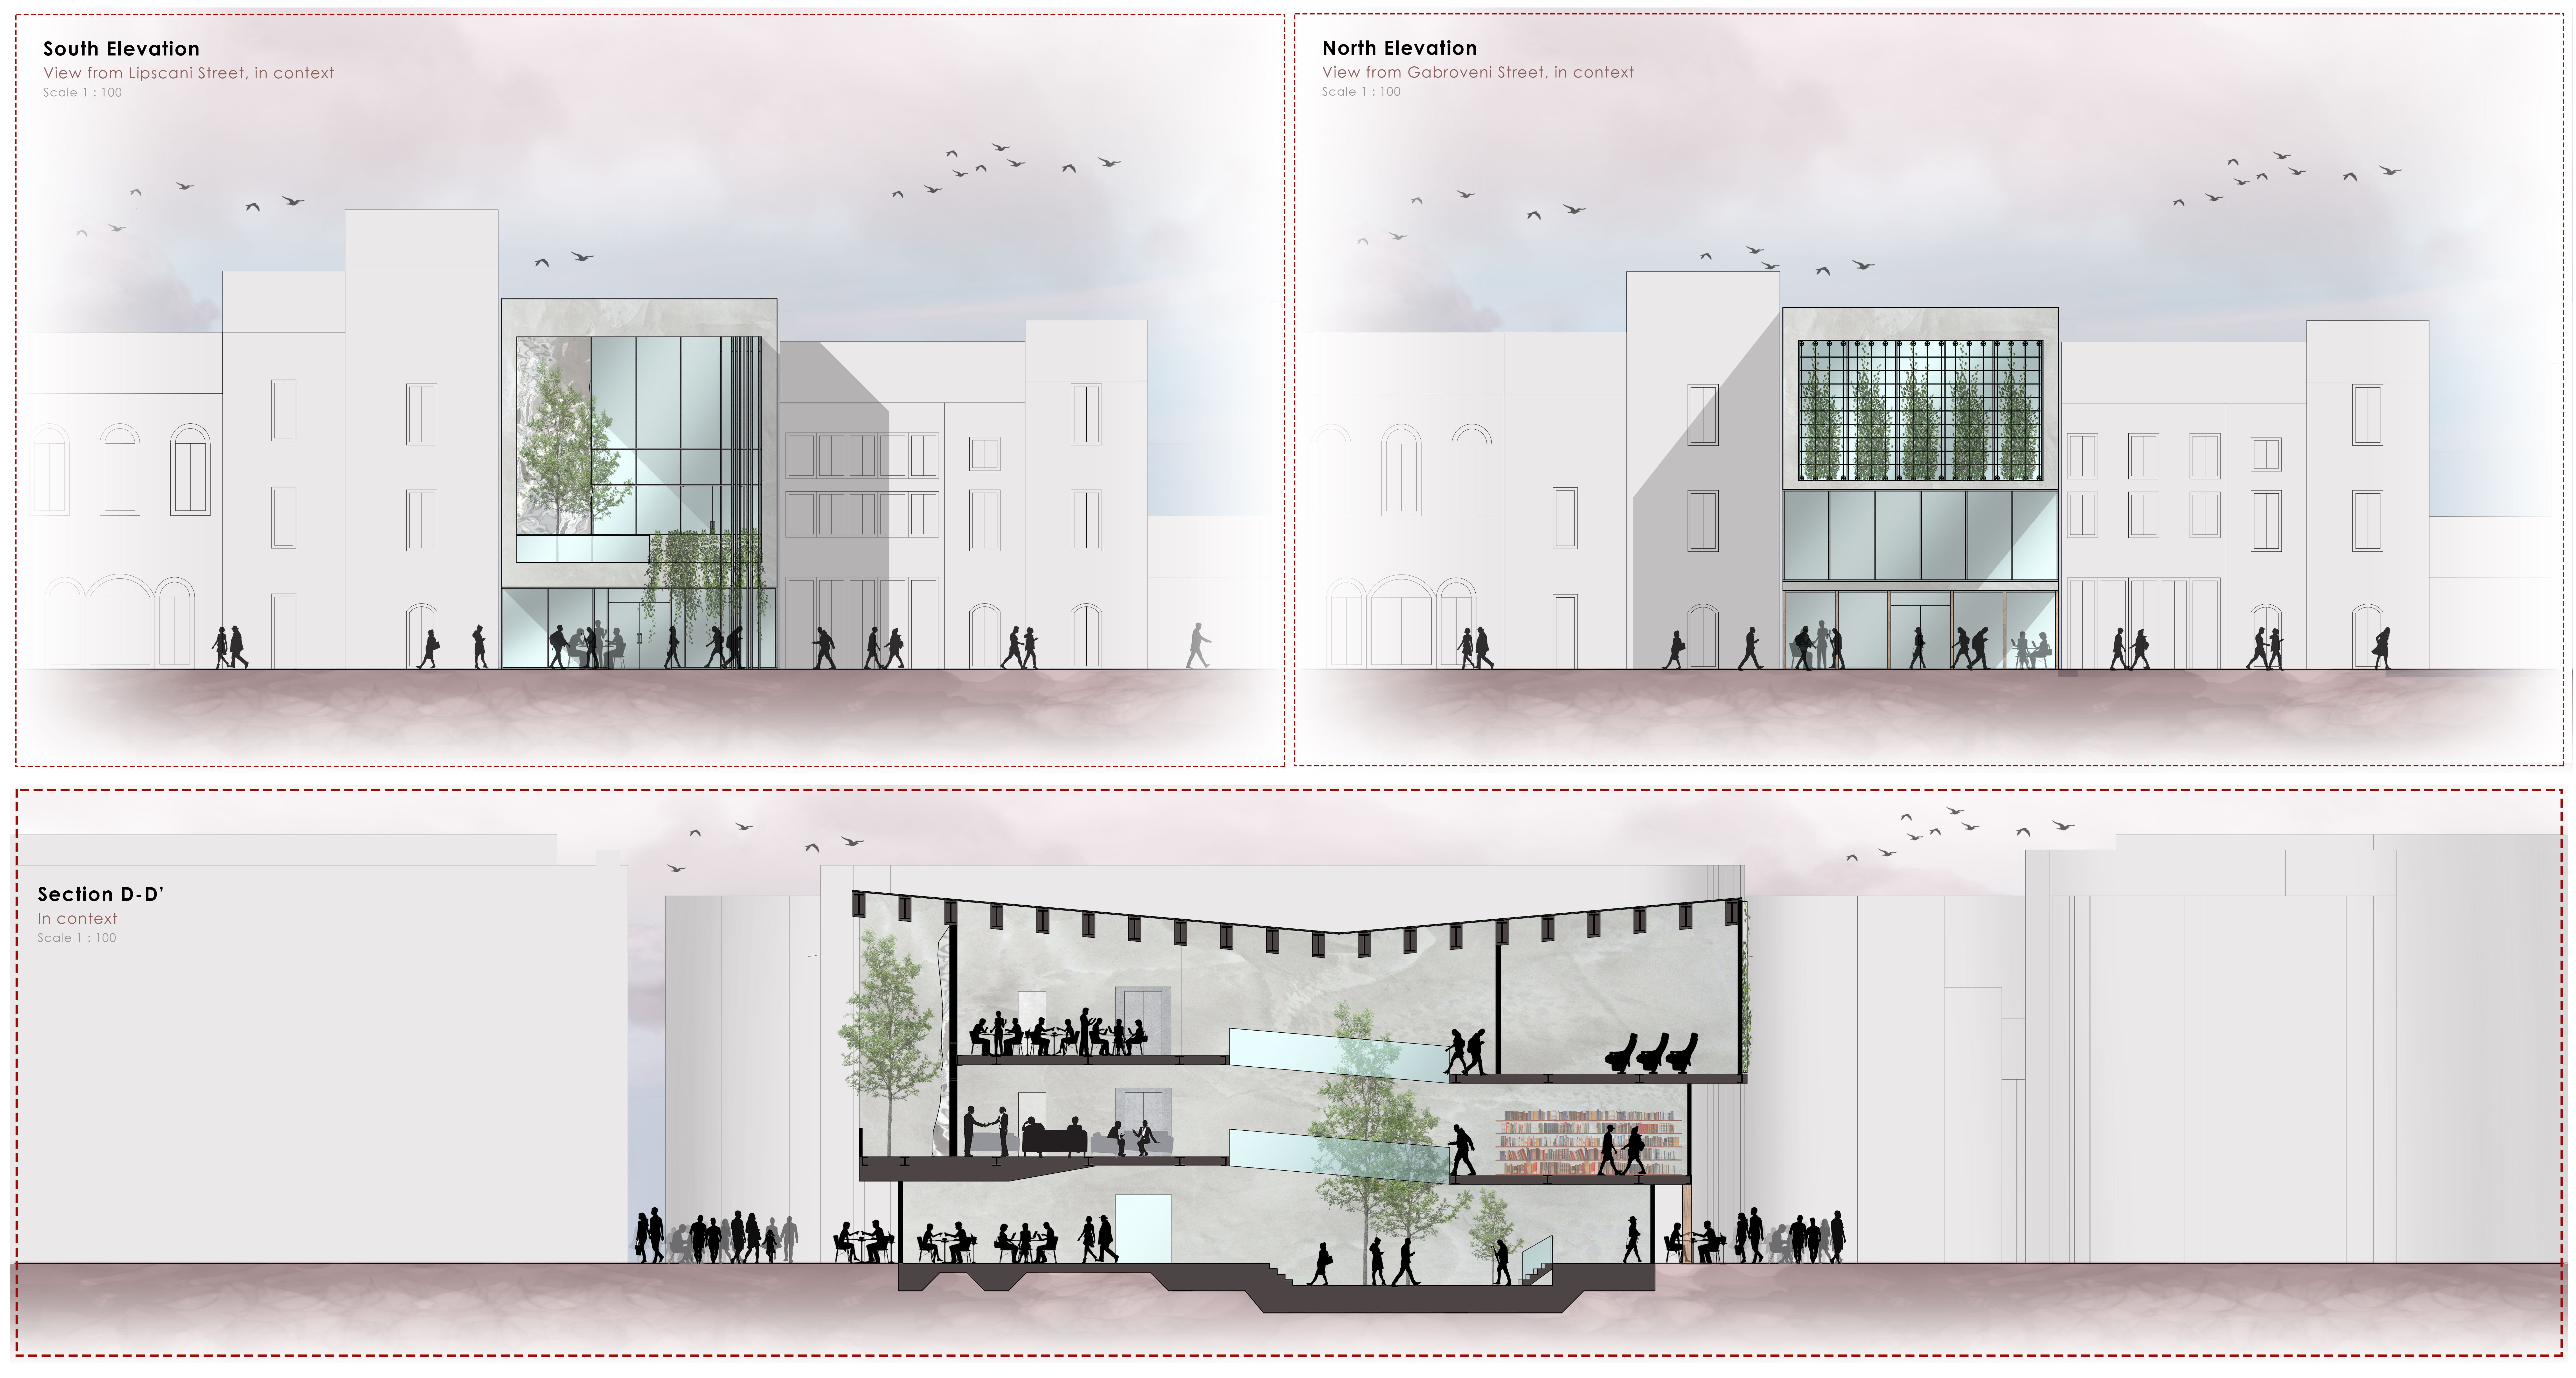 Elevations and sections of the proposed design.